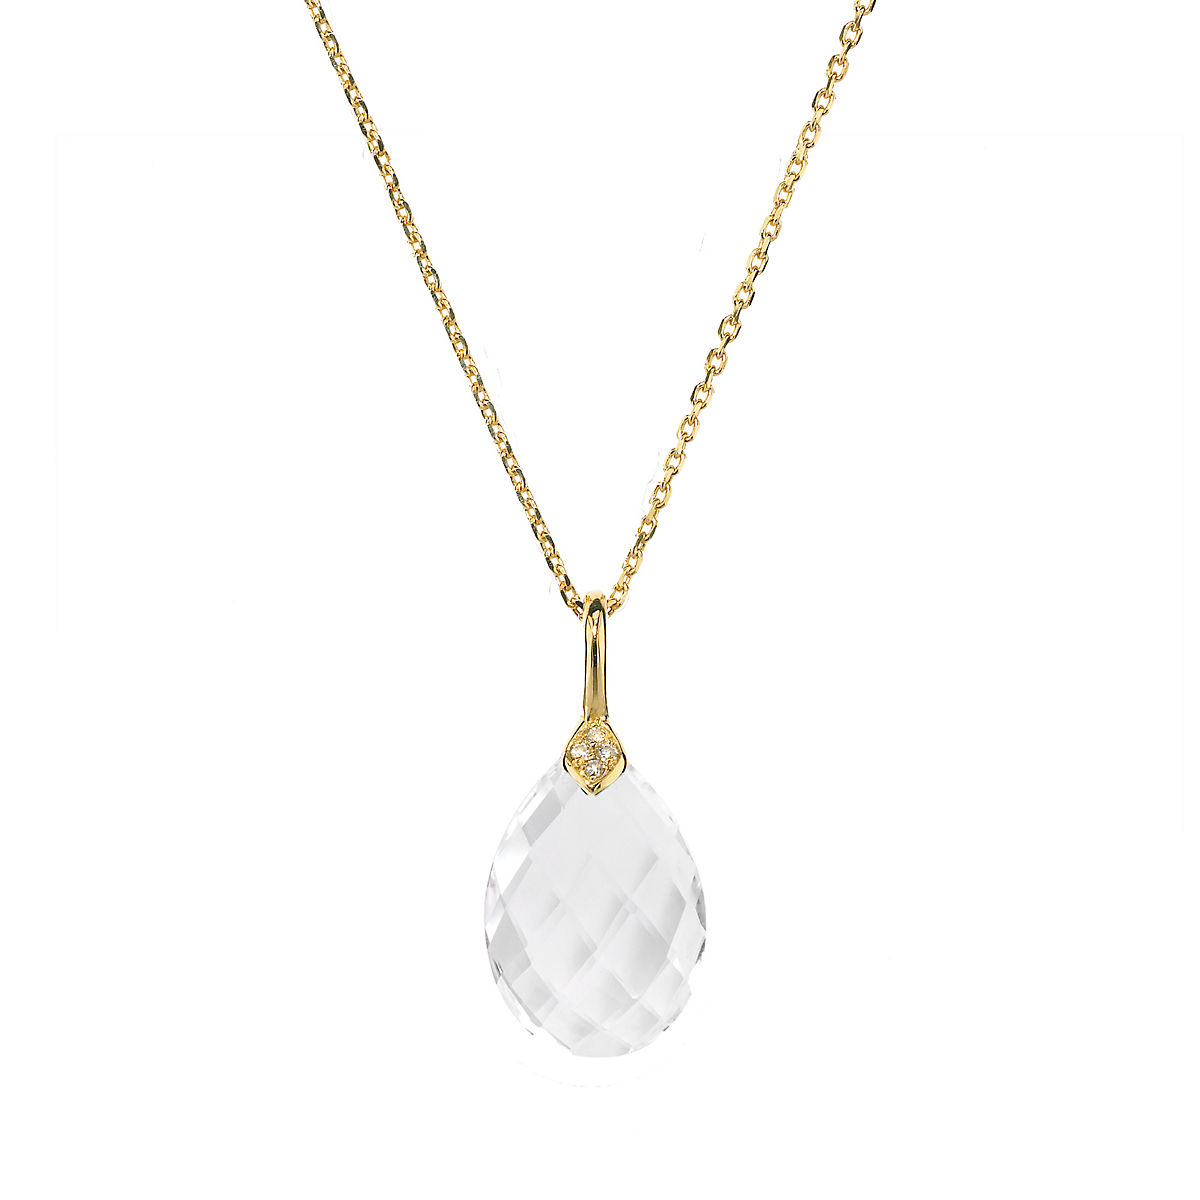 Elizabeth Showers Small Eliza Faceted White Quartz & Diamond Teardrop Necklace